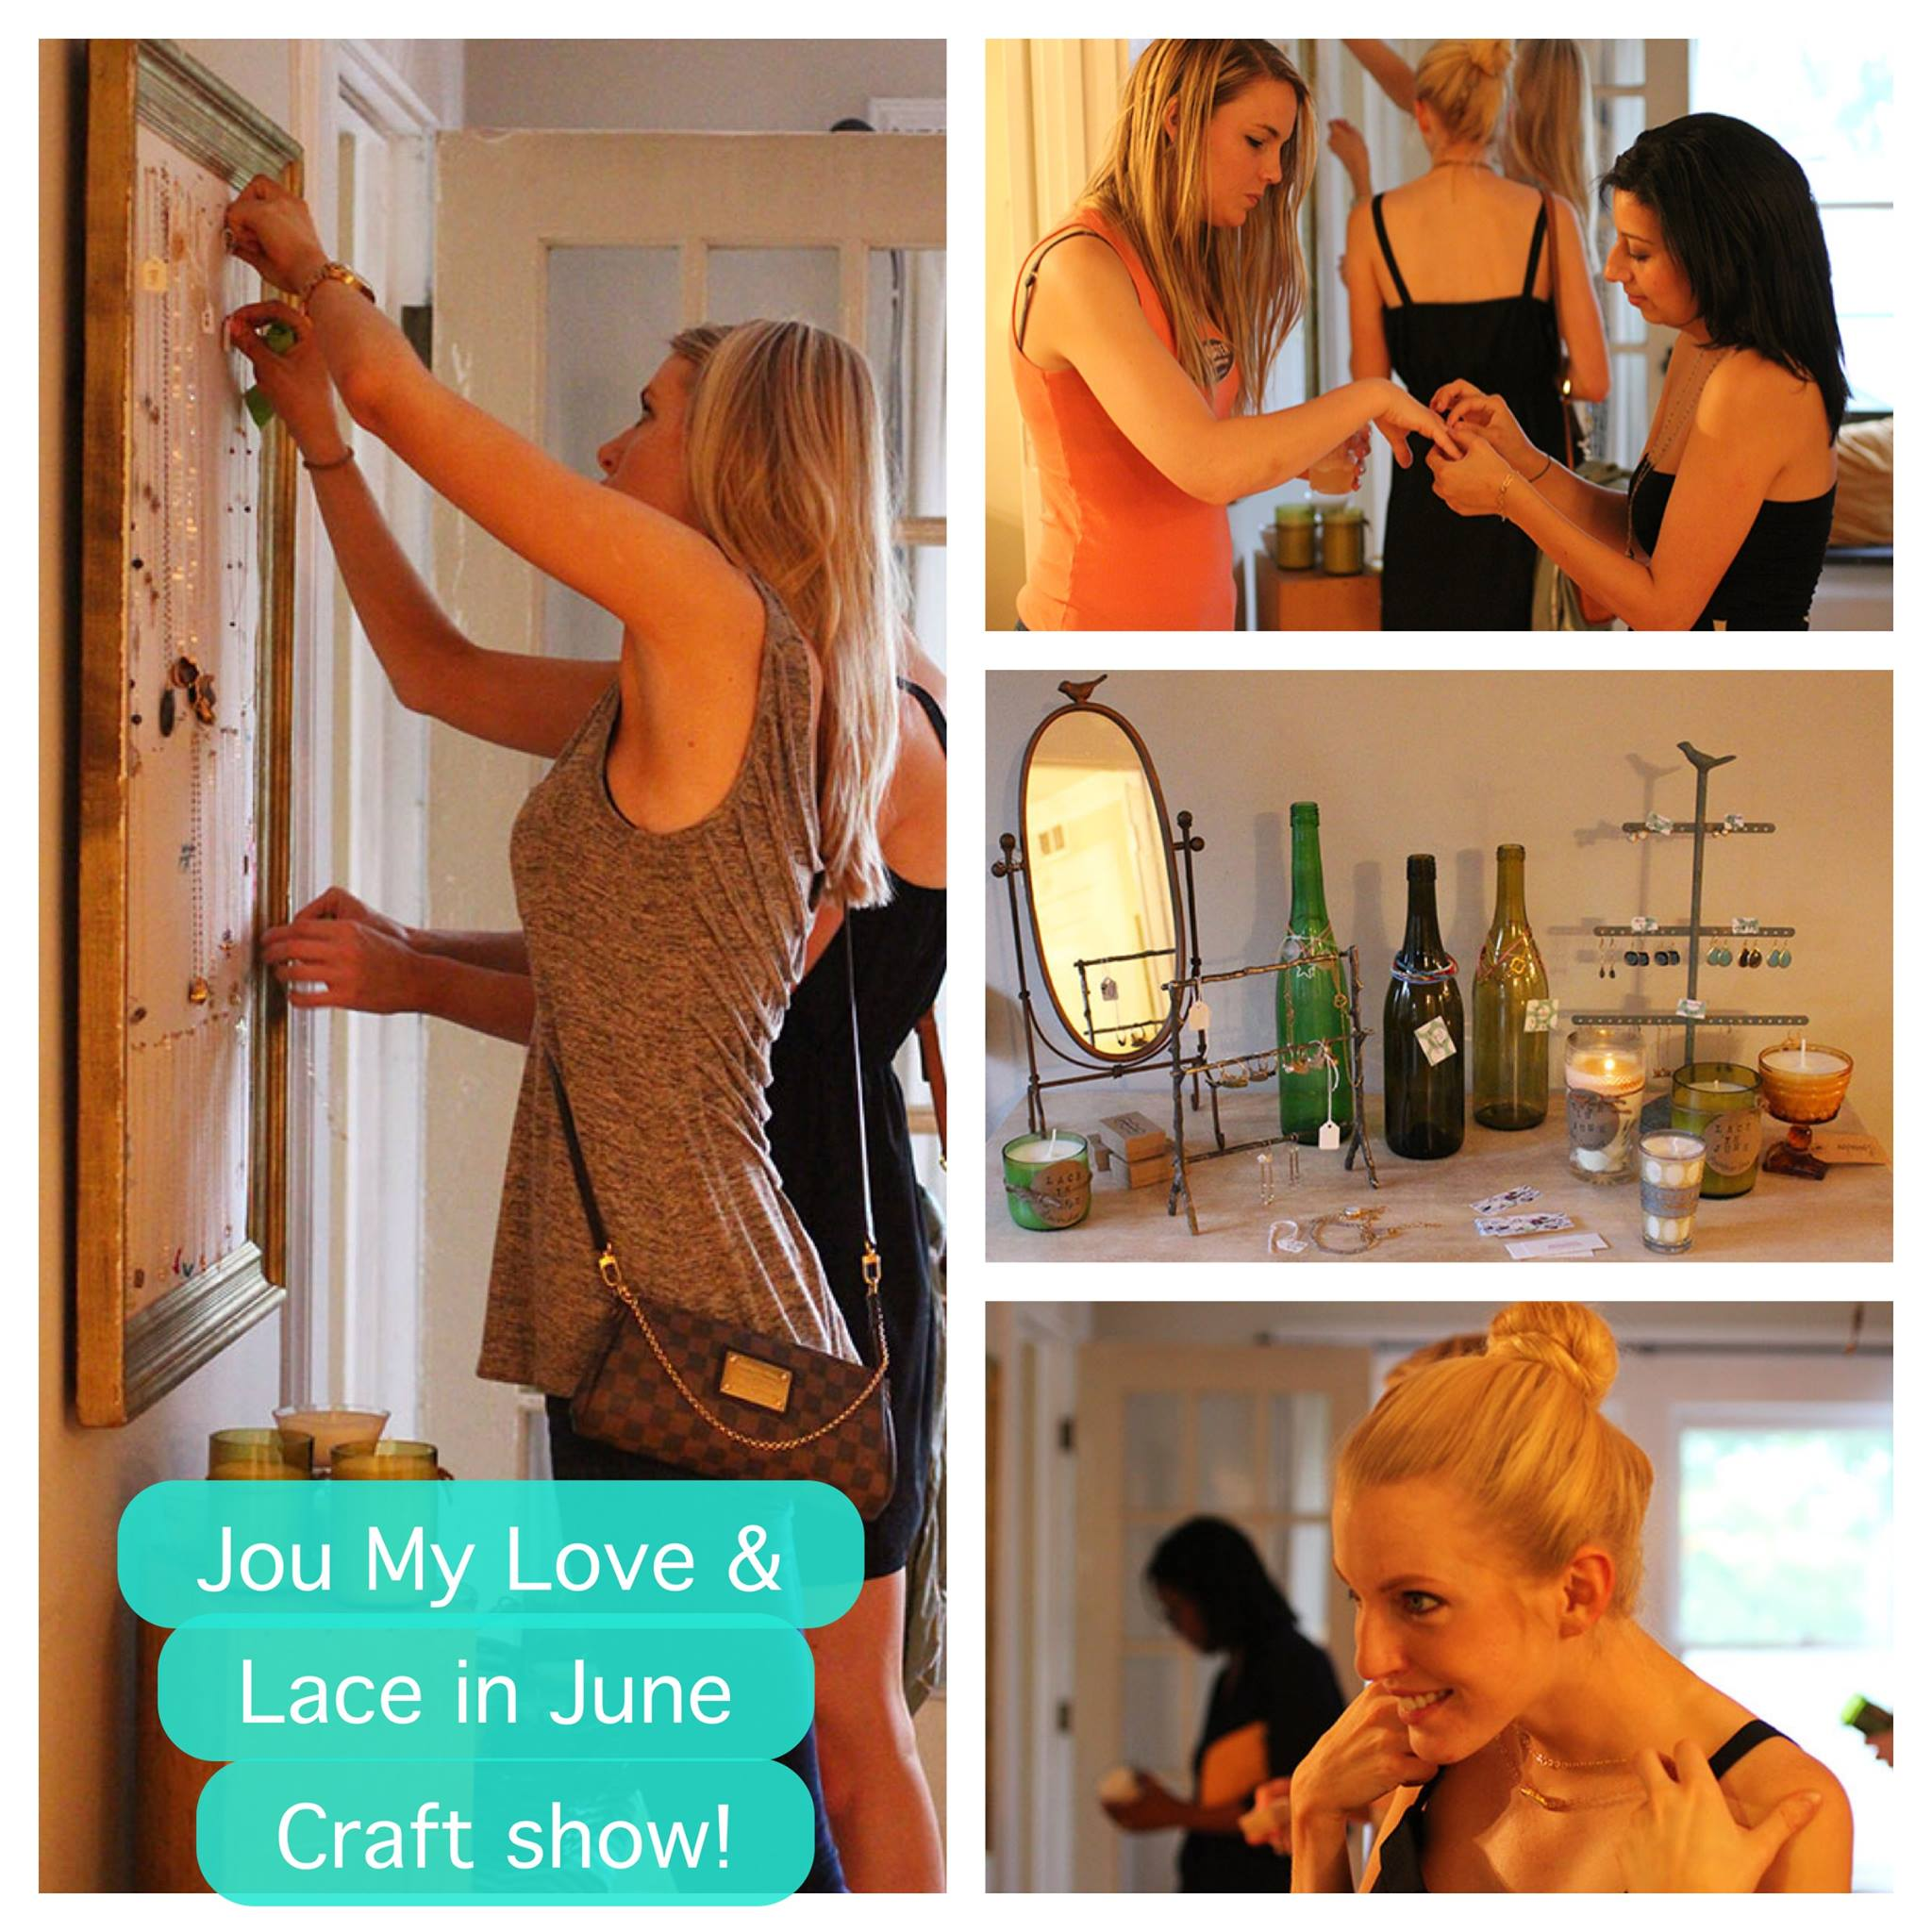 atlanta-indie-craft-shows-jewelry-soy-candles-local